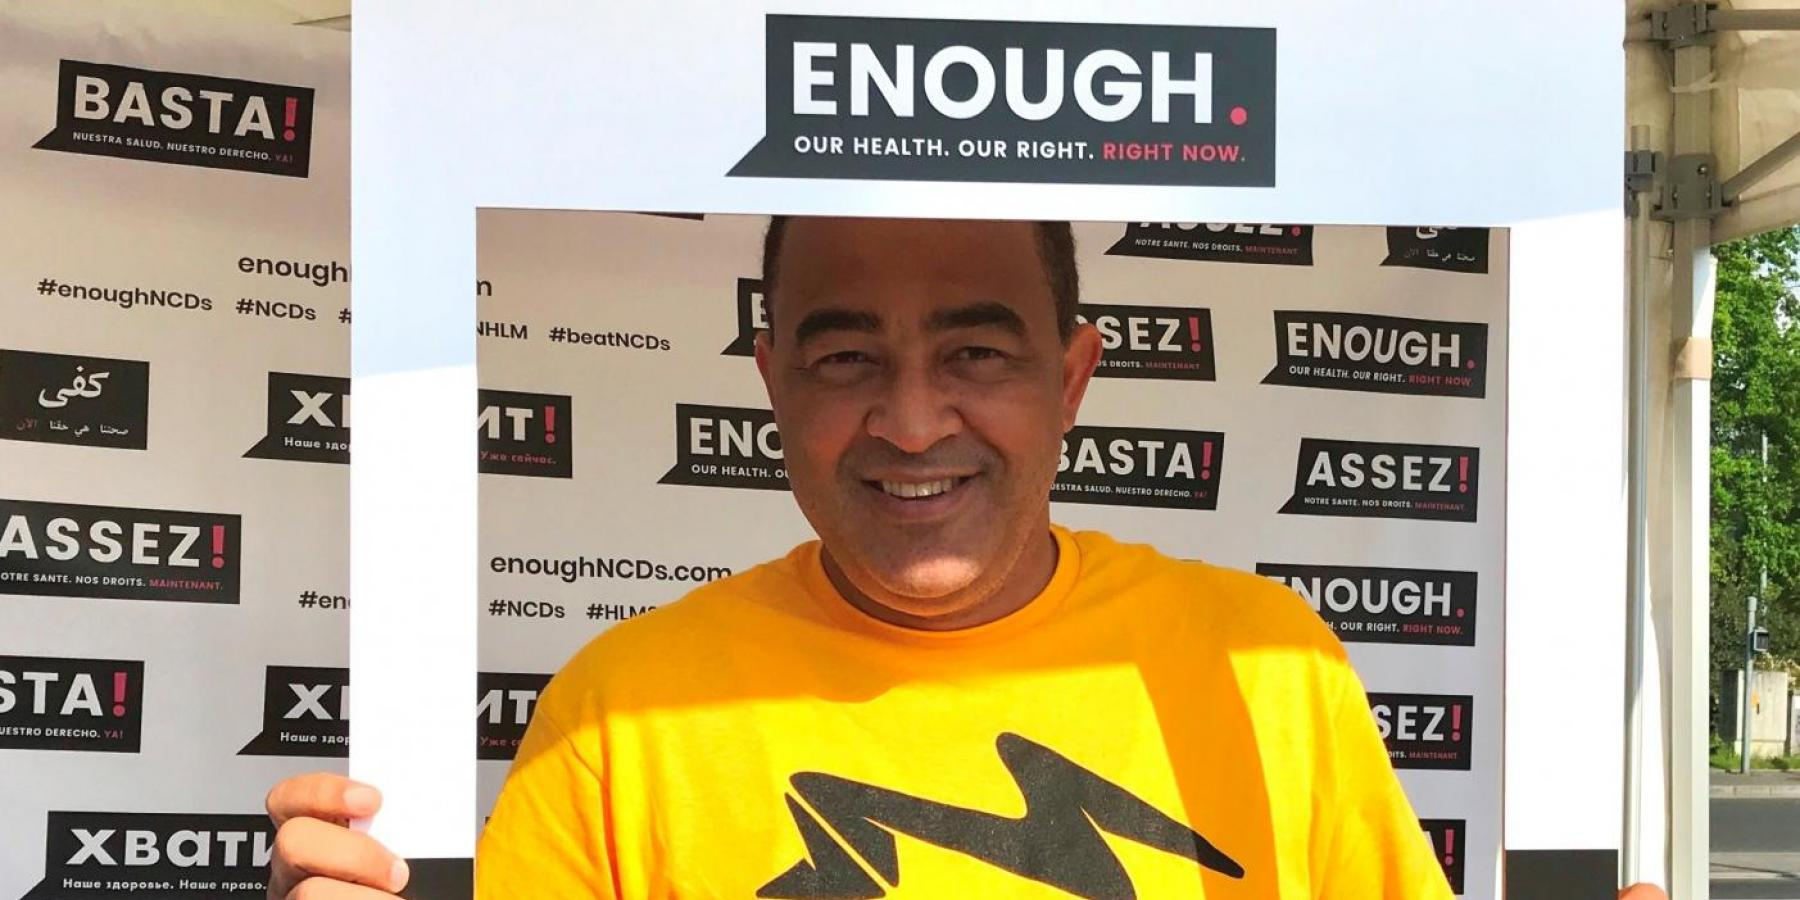 Jamaica's Minister of Health, Dr Christopher Tufton, framed by NCDA's Enough campaign at the WHO Walk the Talk event in Geneva, 20 May 2018